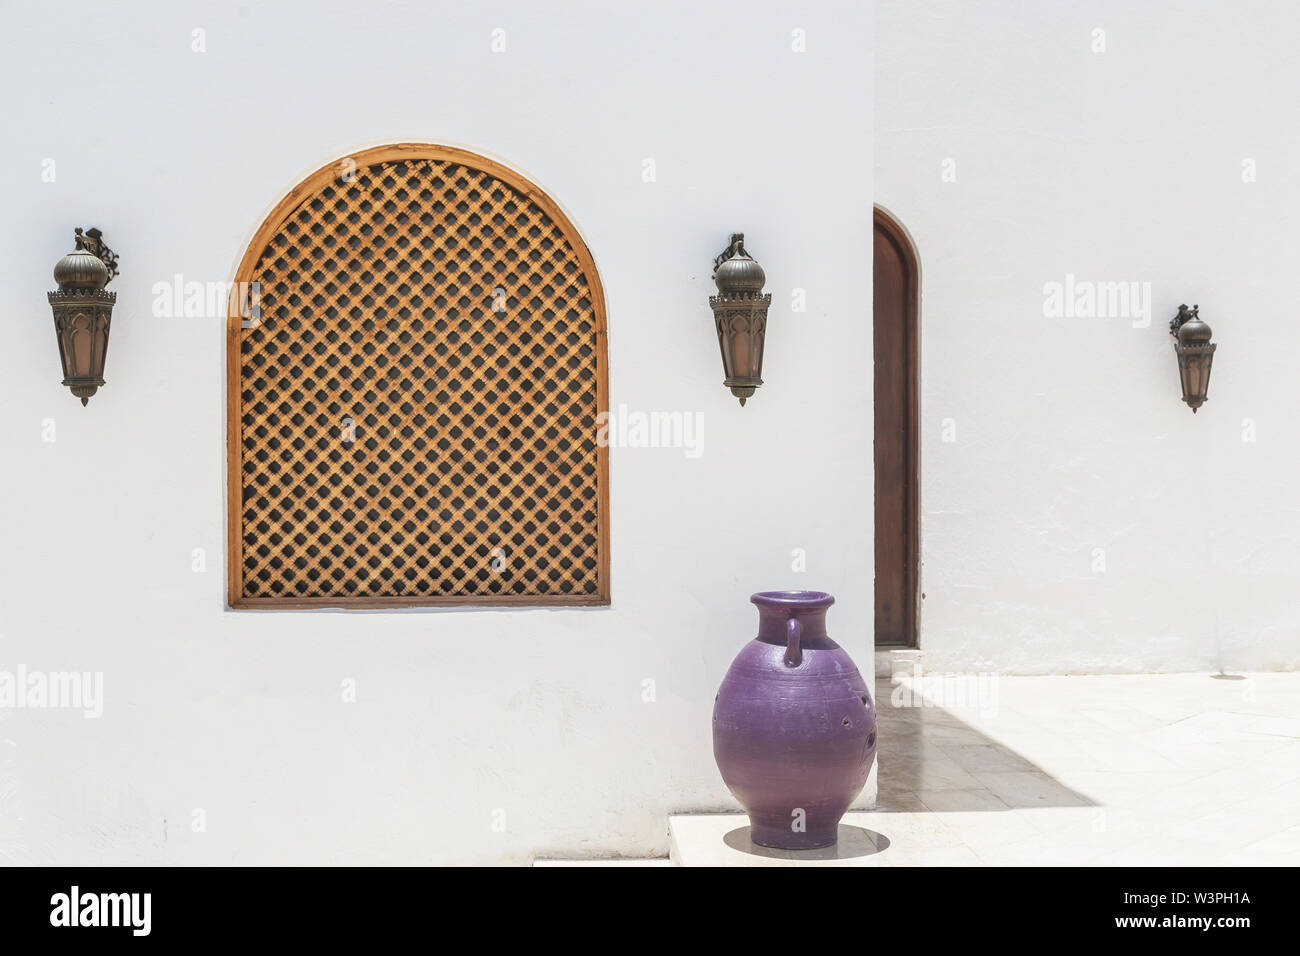 Arabian white building with wooden lamps and jug. - Stock Image